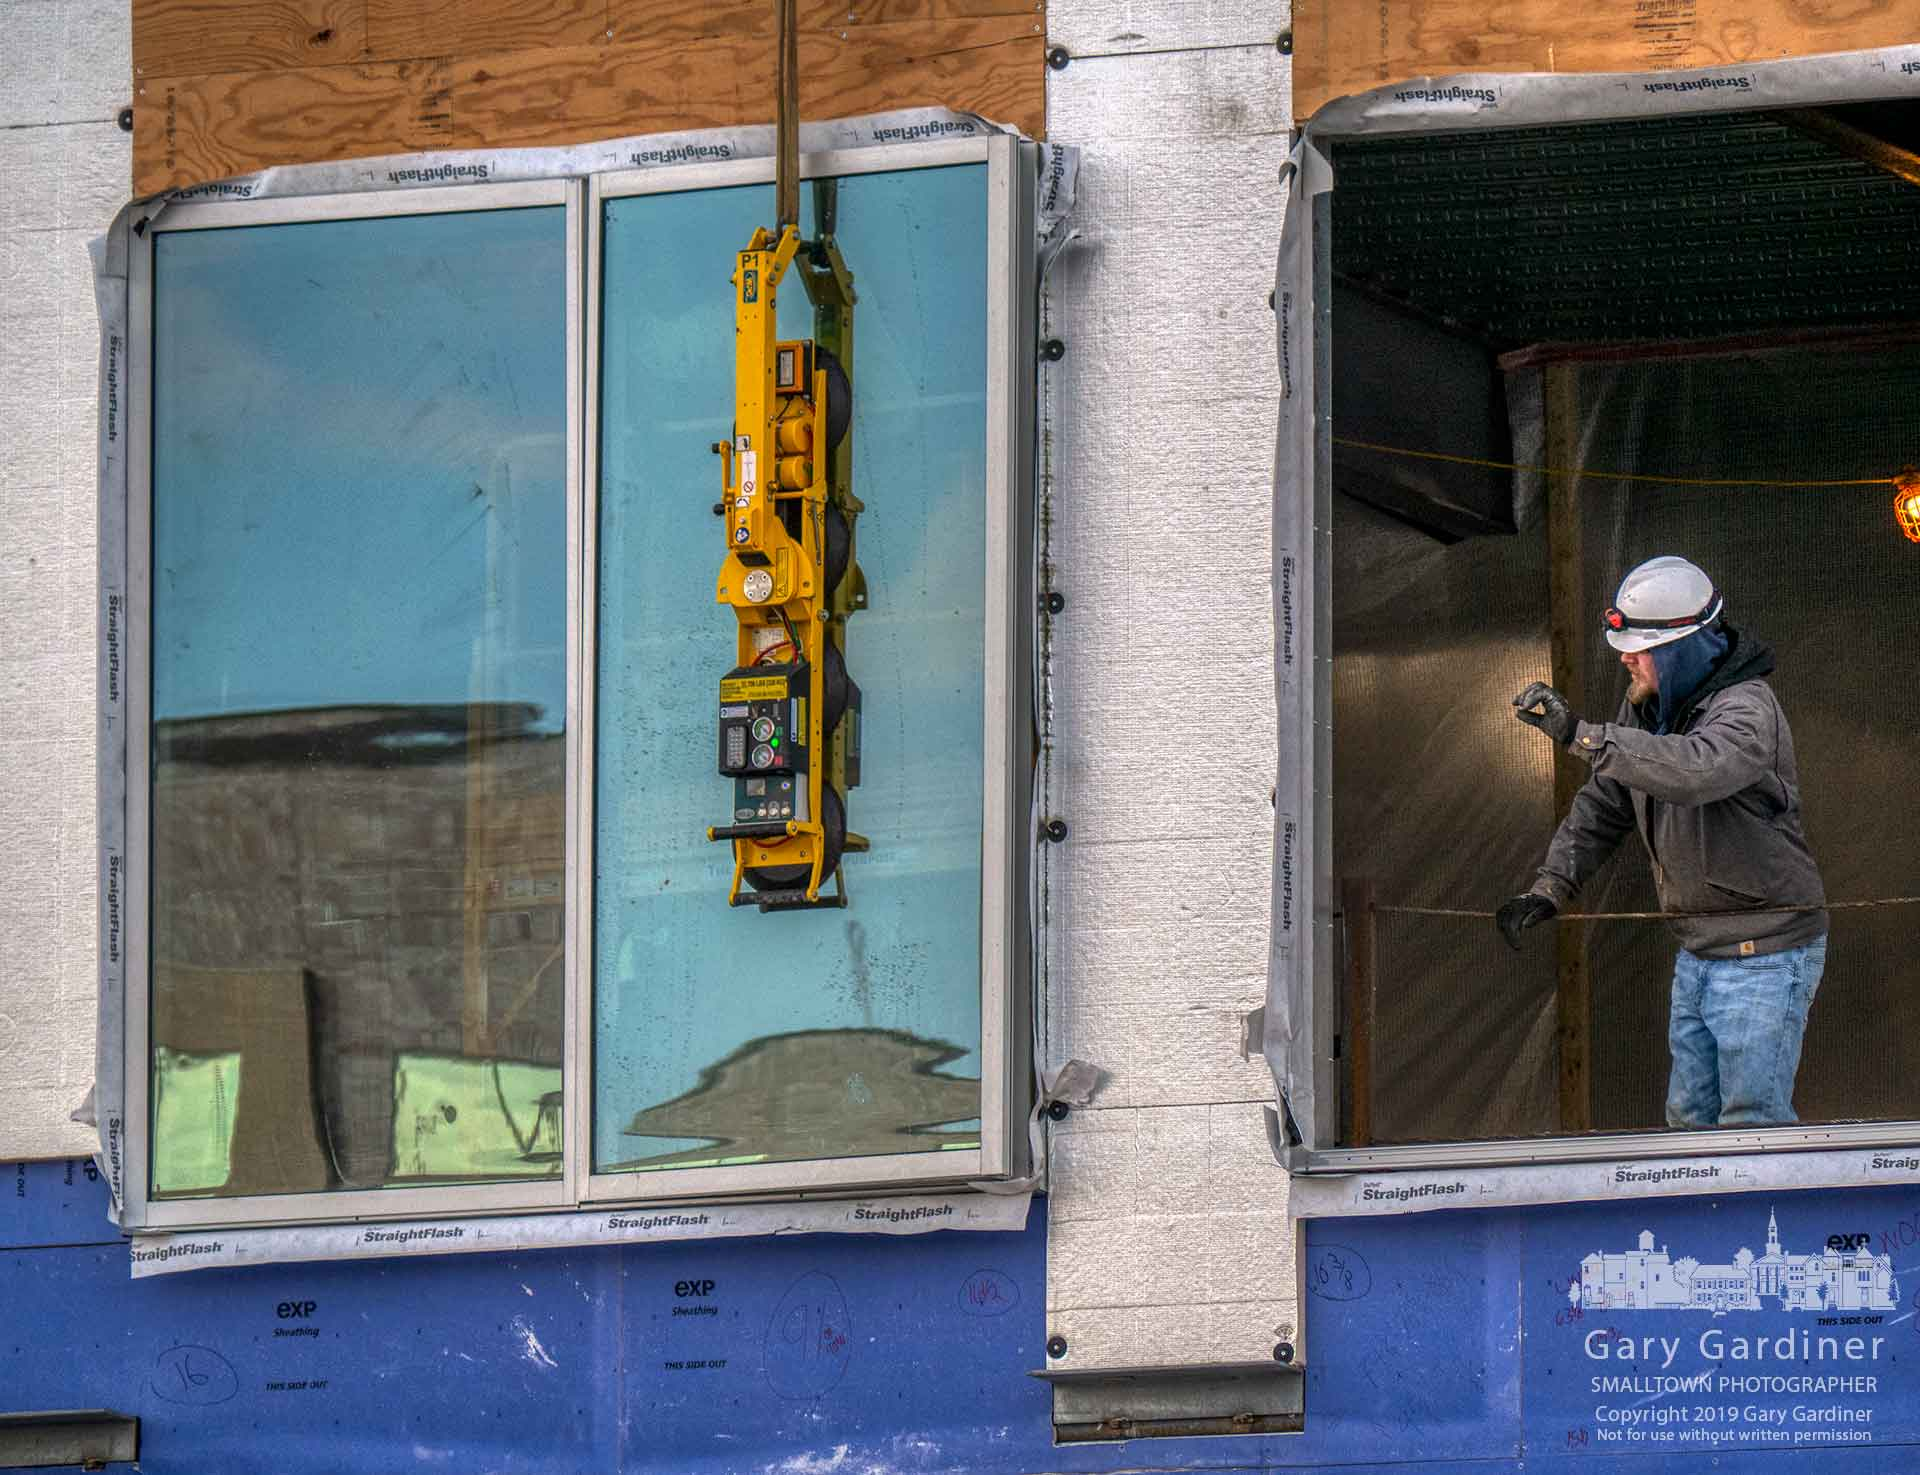 A construction worker signals instructions to a crane operator movinga window into position for installation at the DHL building being built in Westar. My Final Photo for Feb. 21, 2019.